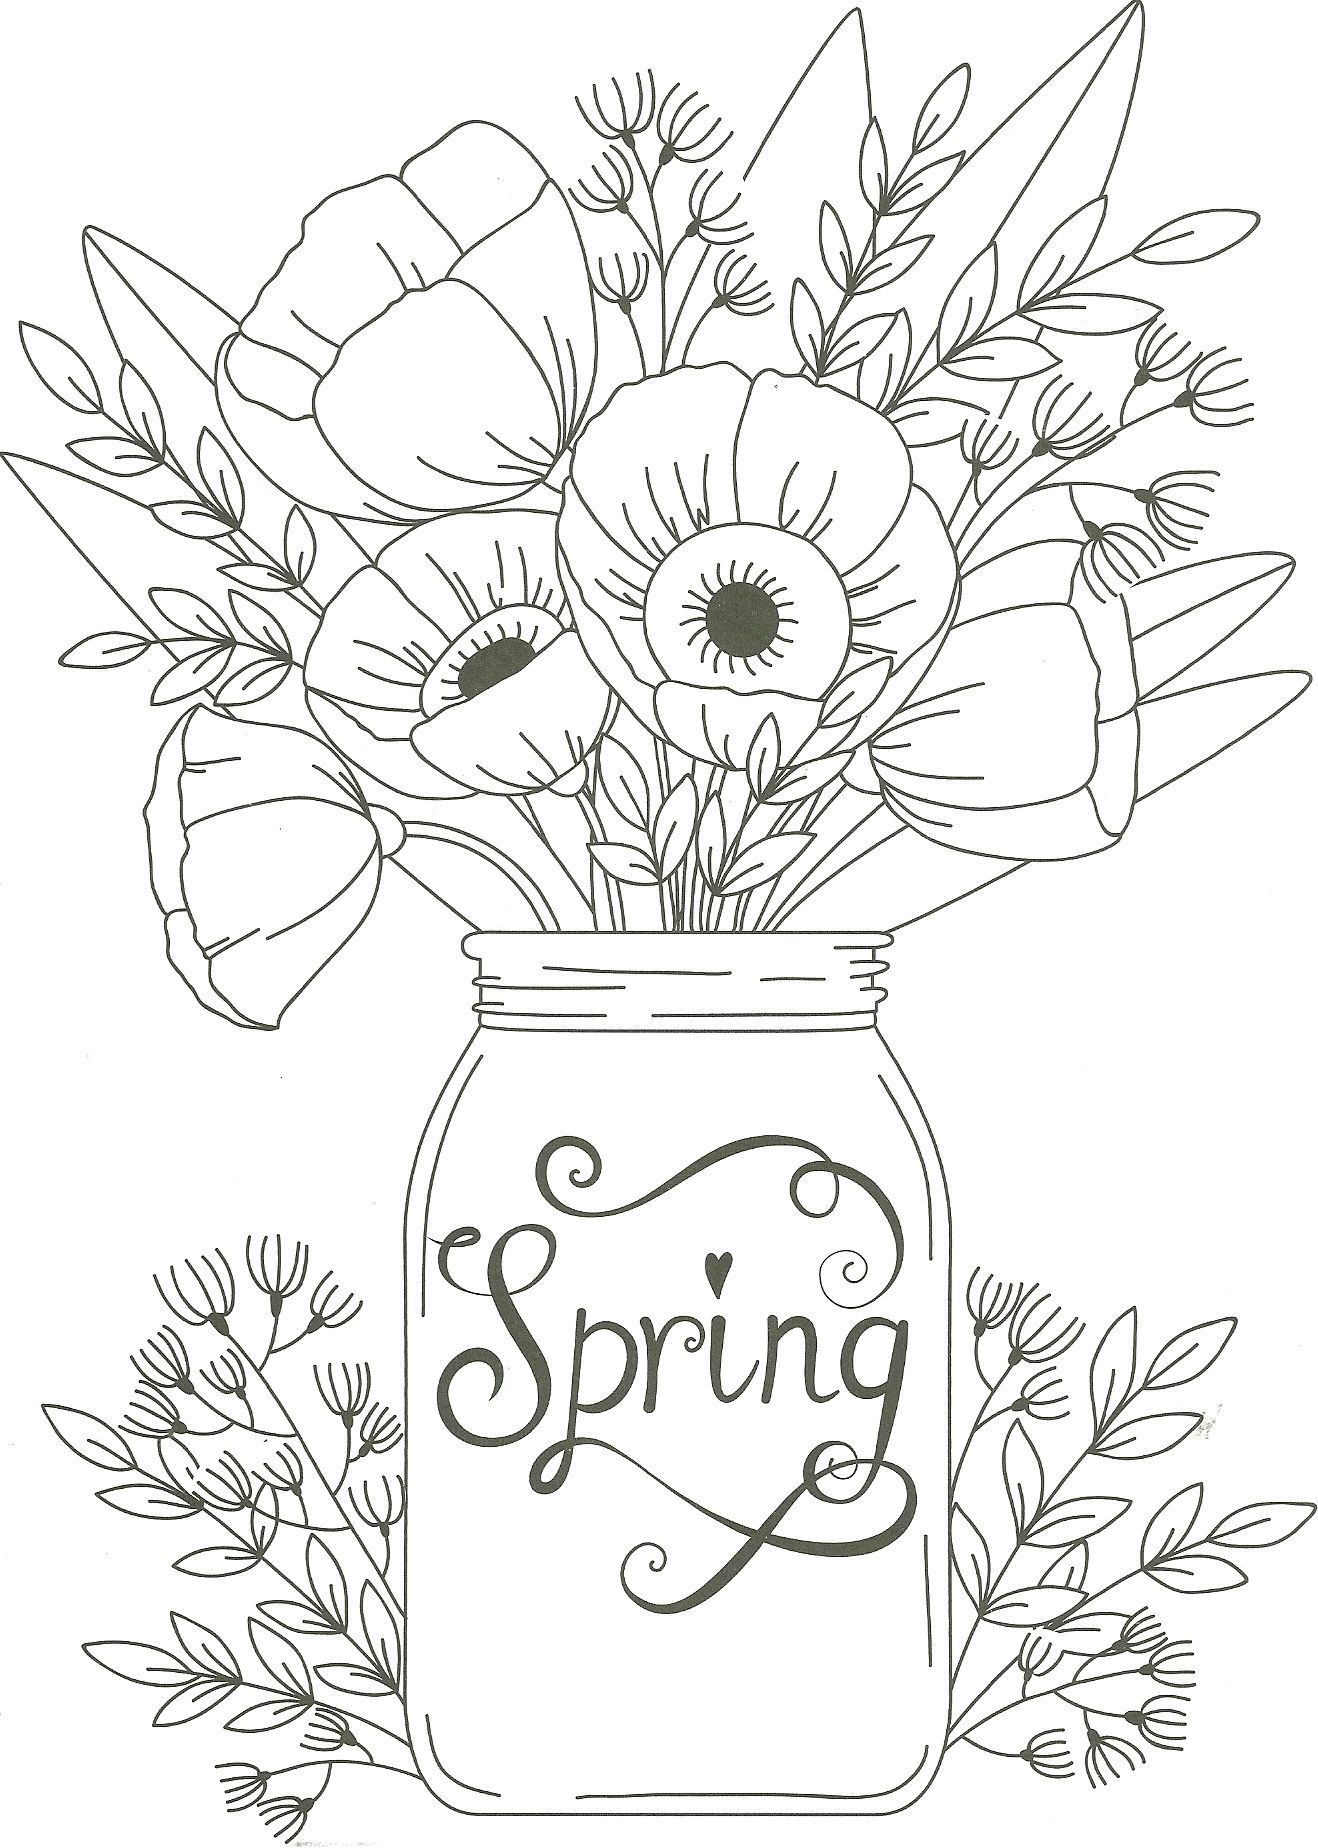 spring mason jar floral coloring page  Flower coloring pages